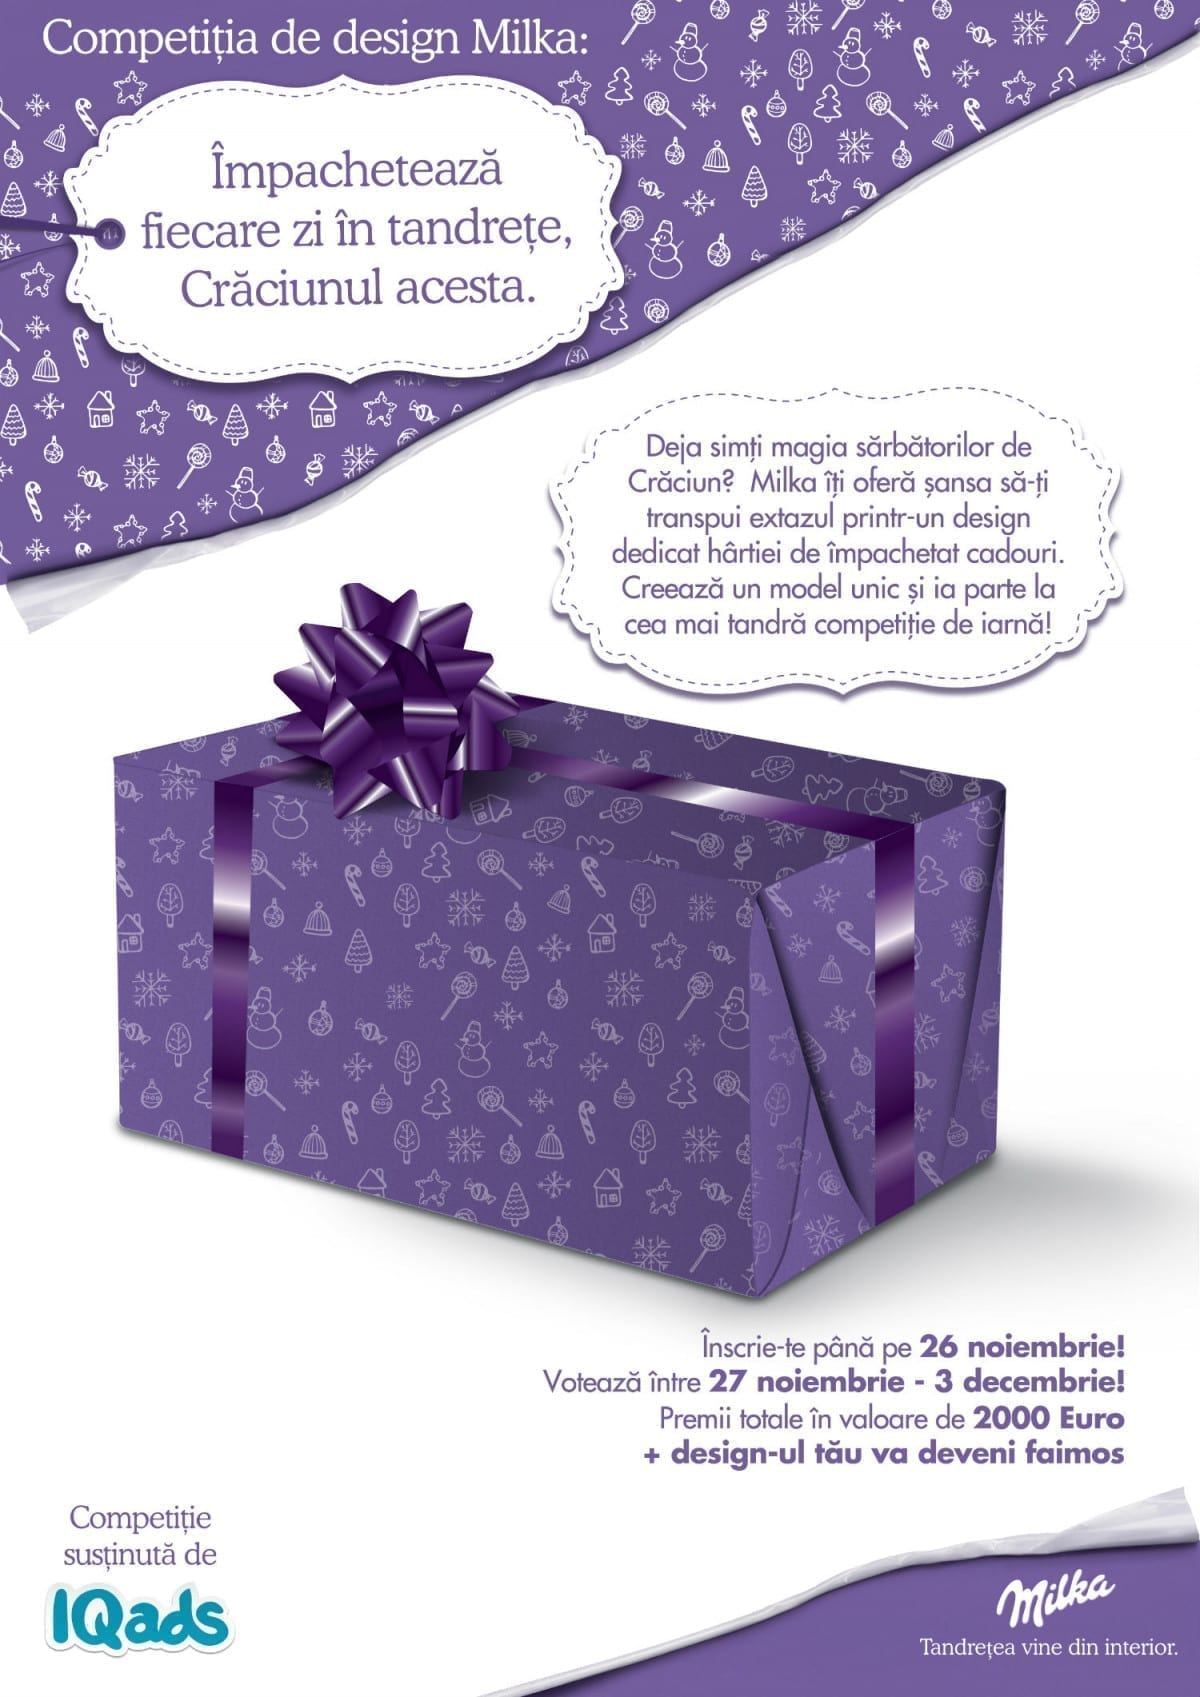 milka iqads competition brief